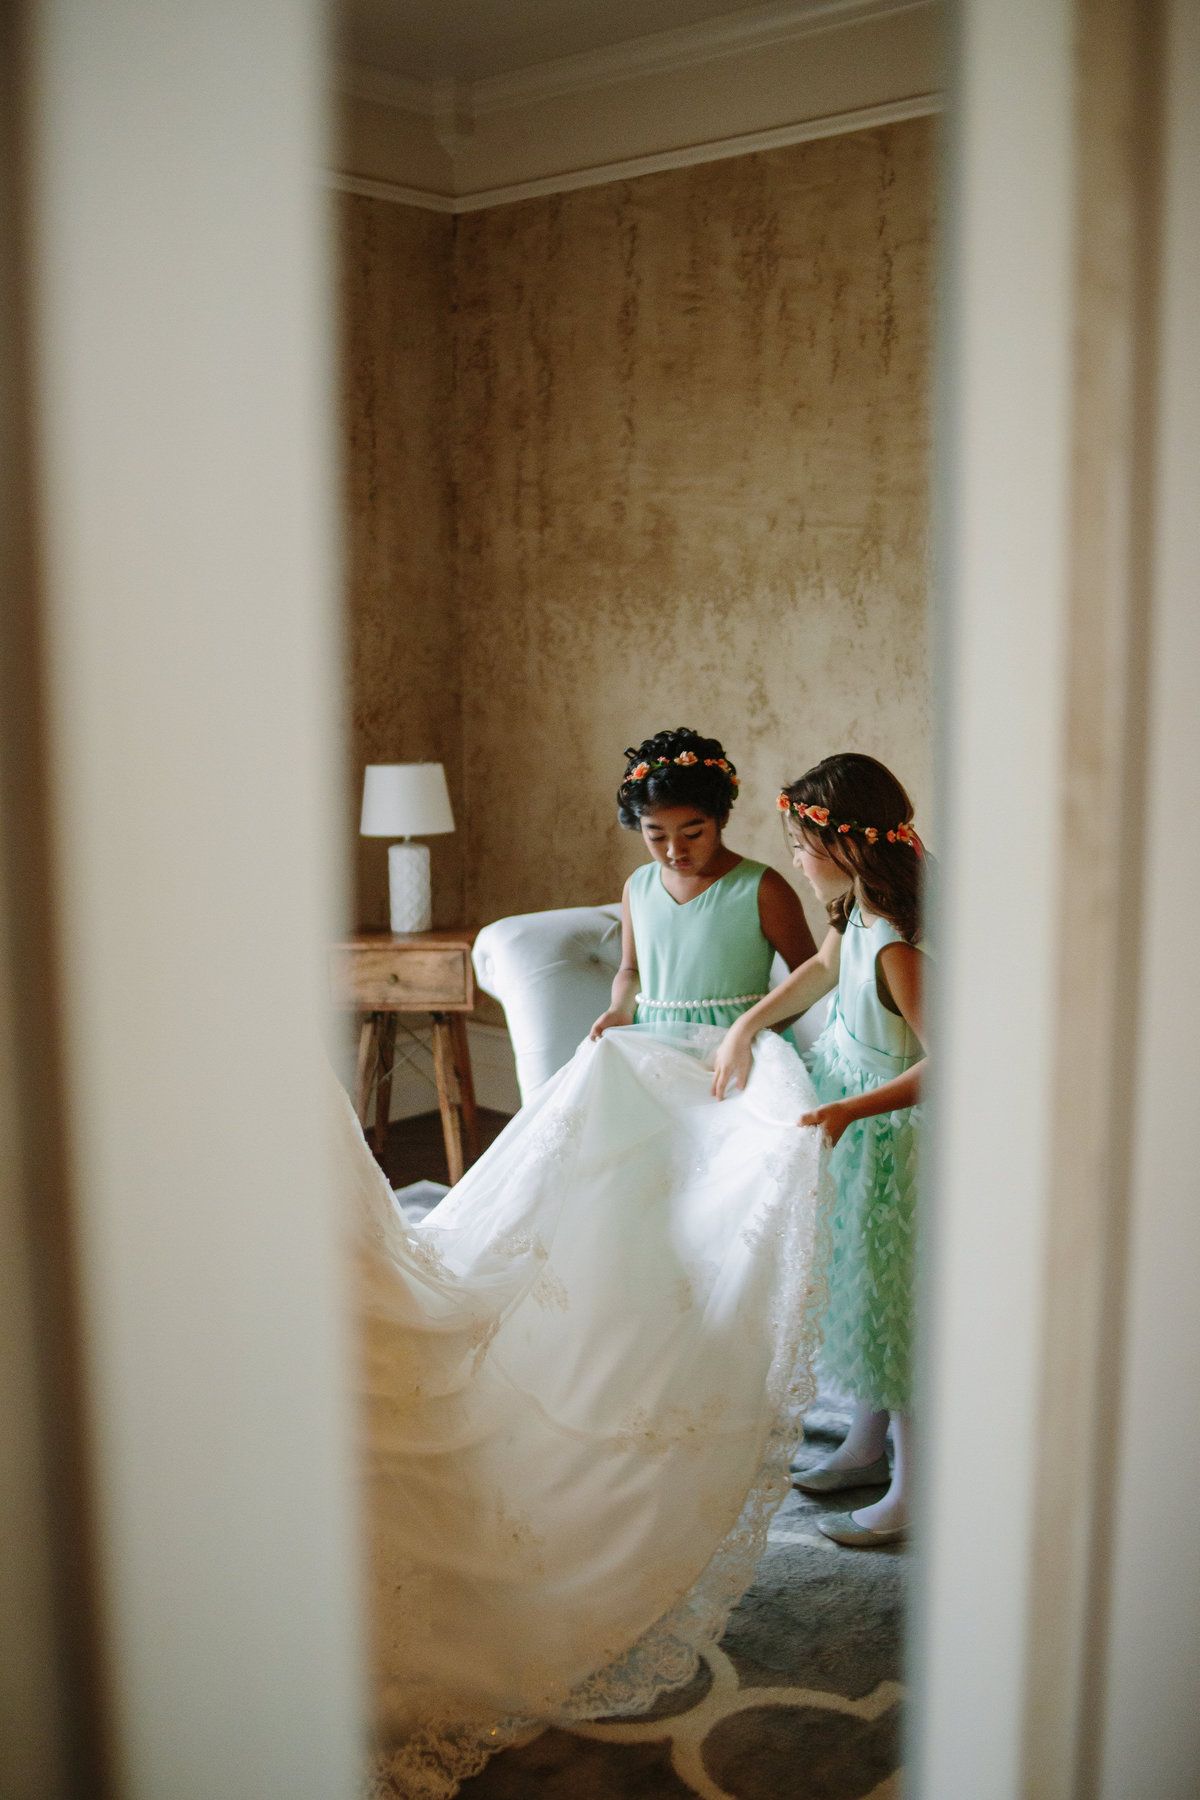 Flower girls checking out bridal gown before wedding while getting ready